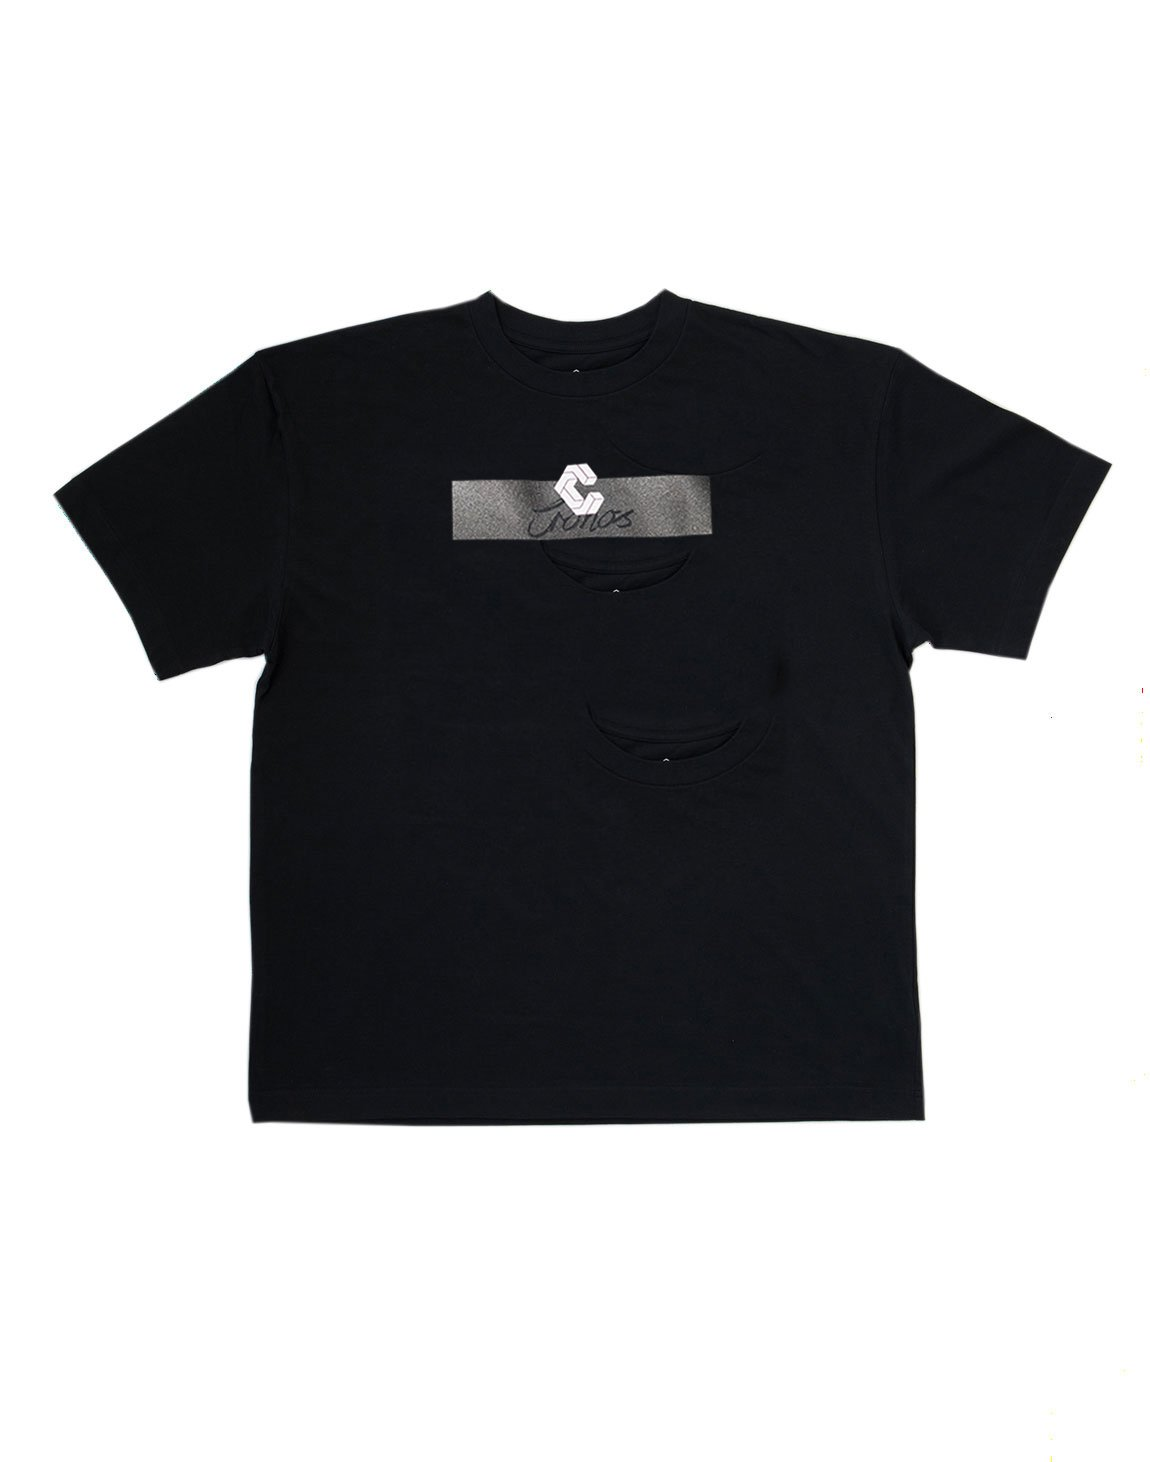 <img class='new_mark_img1' src='https://img.shop-pro.jp/img/new/icons1.gif' style='border:none;display:inline;margin:0px;padding:0px;width:auto;' />CRONOS CURSIVE LOGO T-SHIRT【BLACK】